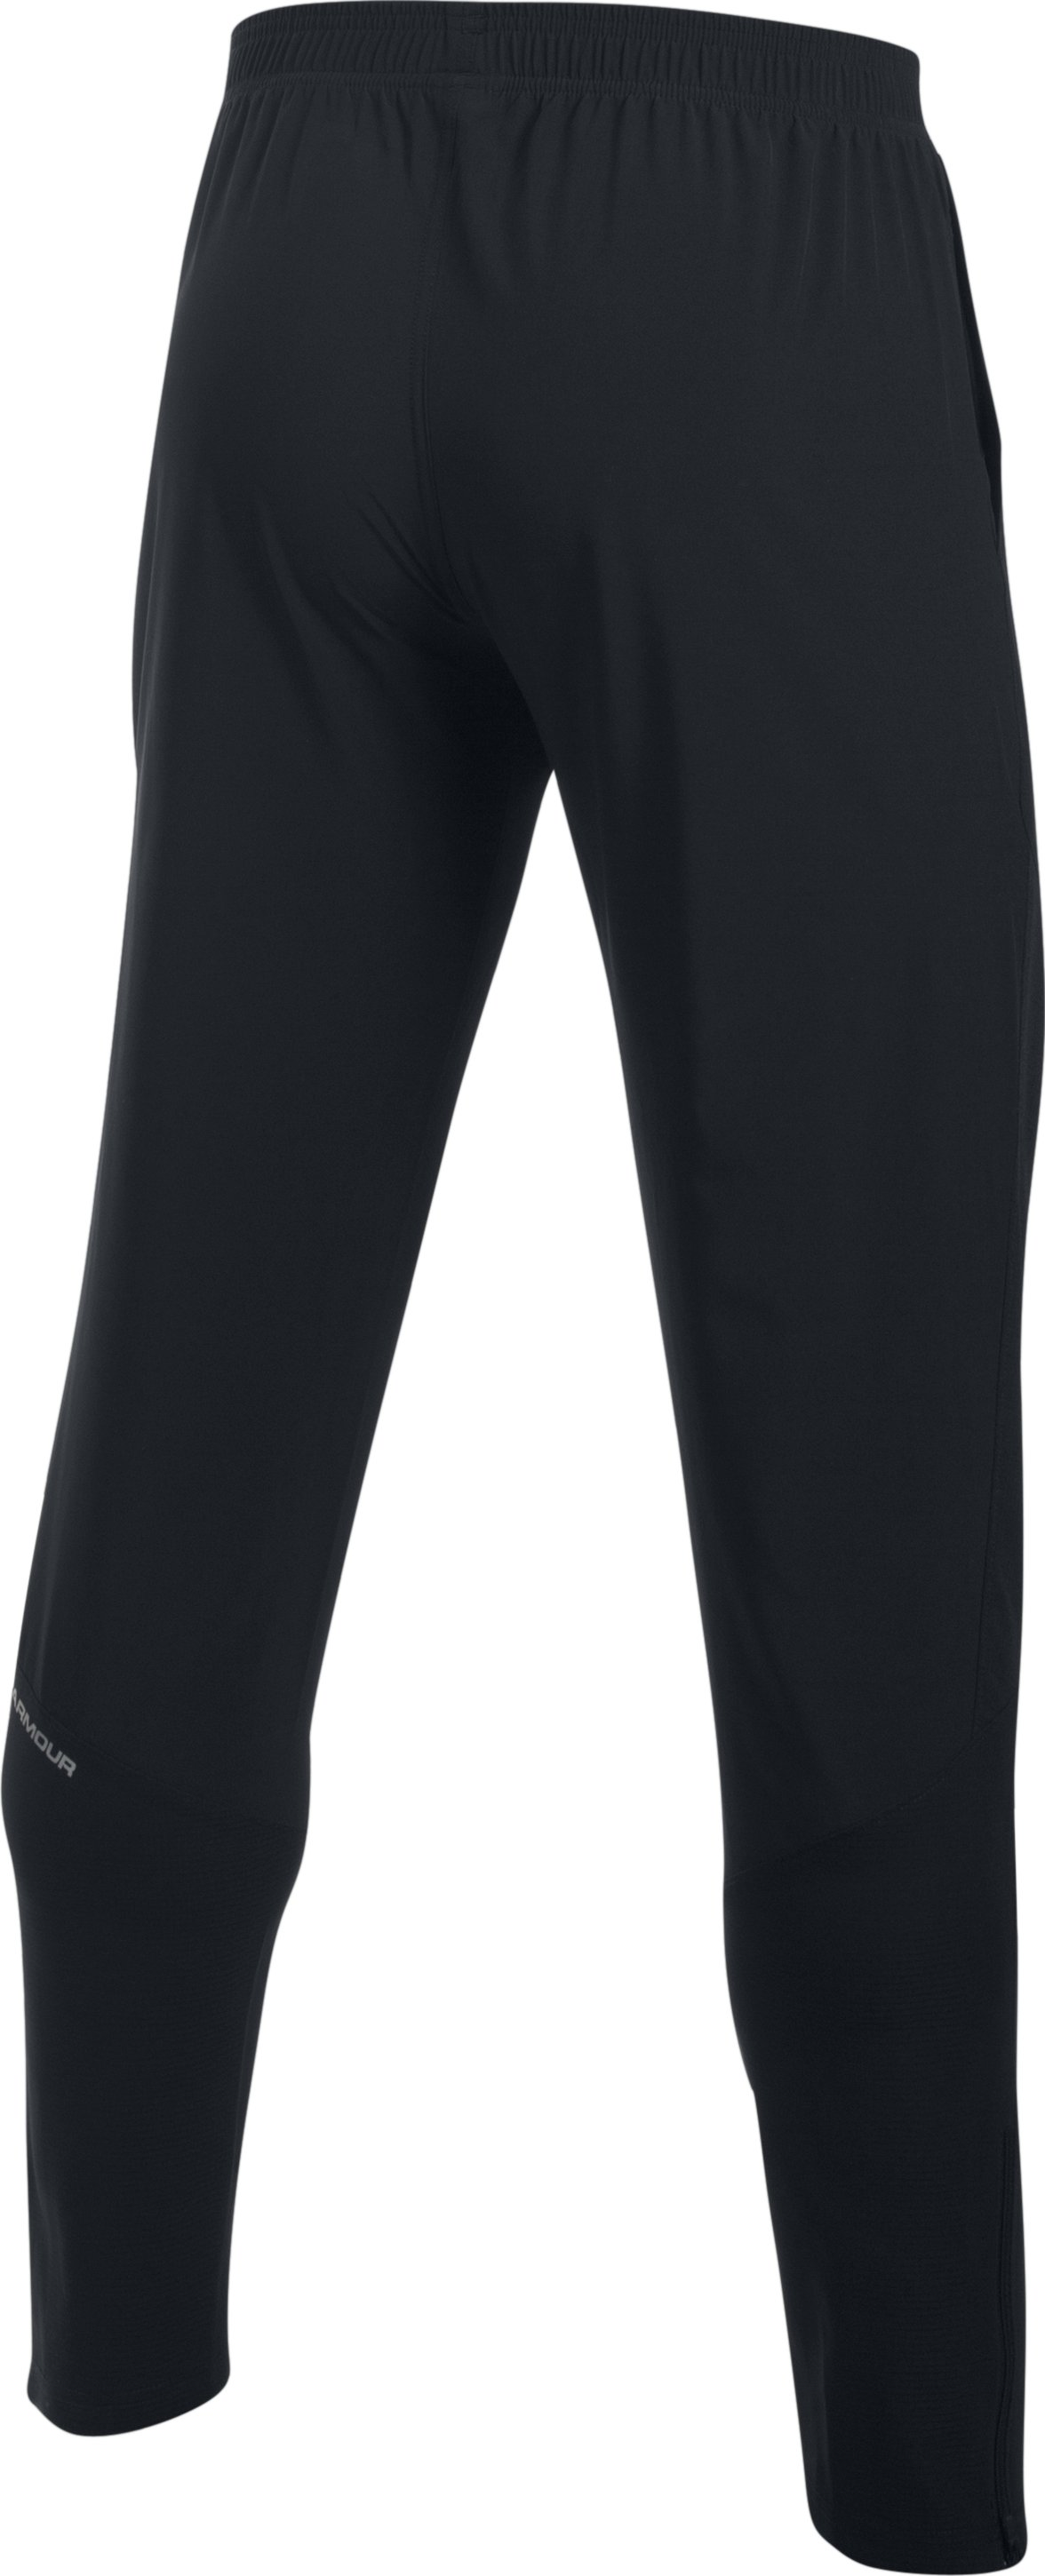 Men's UA No Breaks Stretch-Woven Run Pants, Black , undefined